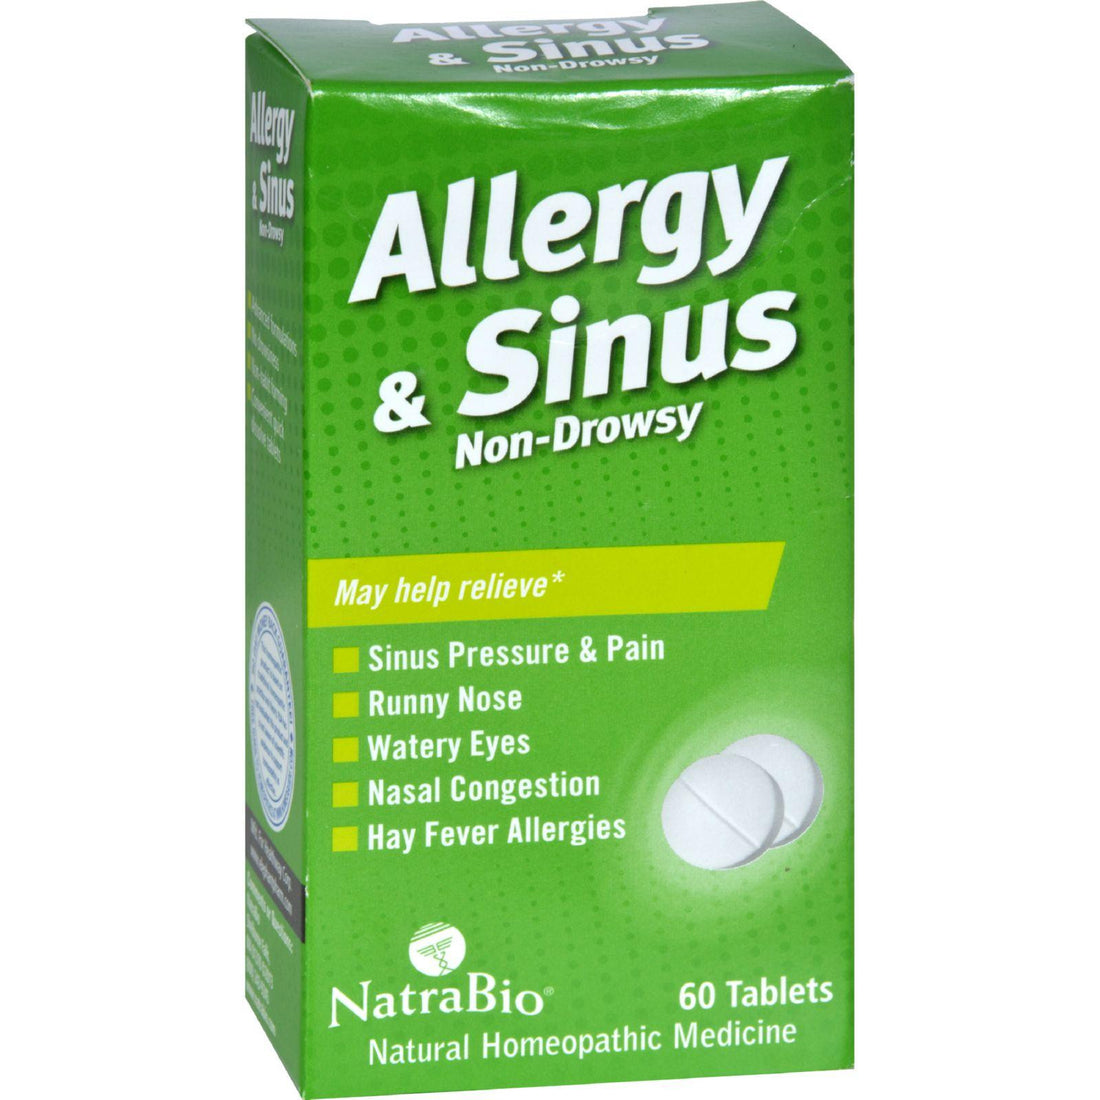 Mother Mantis: Natrabio Allergy And Sinus Non-drowsy - 60 Tablets Natrabio